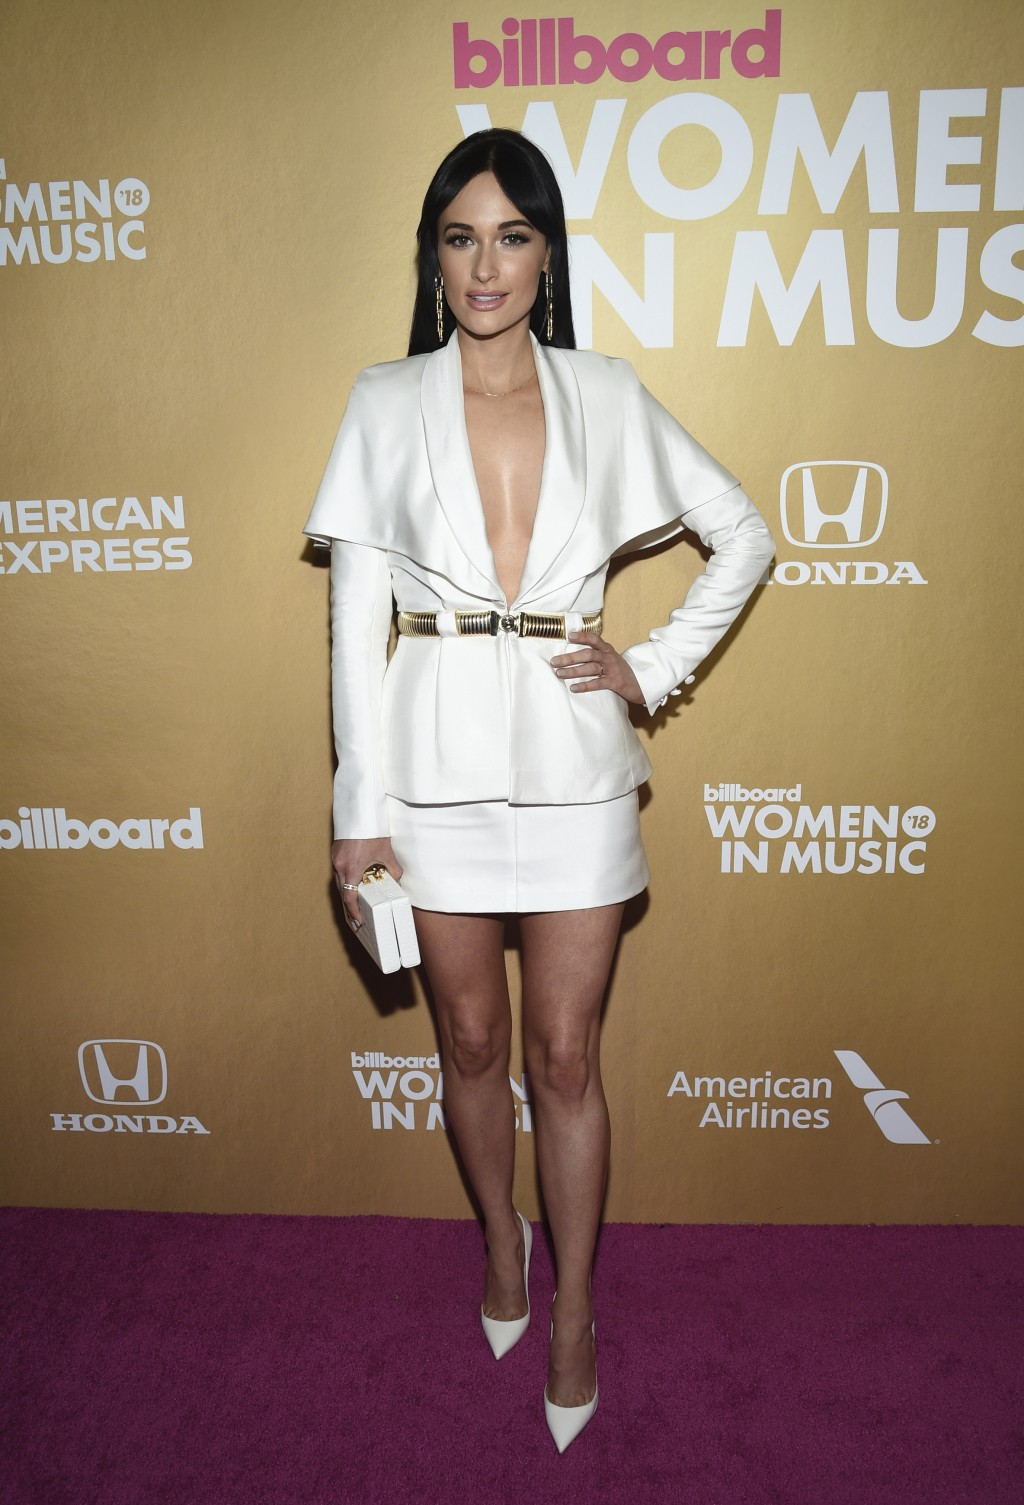 Kacey Musgraves attends the 13th annual Billboard Women in Music event at Pier 36 on Thursday, Dec. 6, 2018, in New York. (Photo by Evan Agostini/Invi